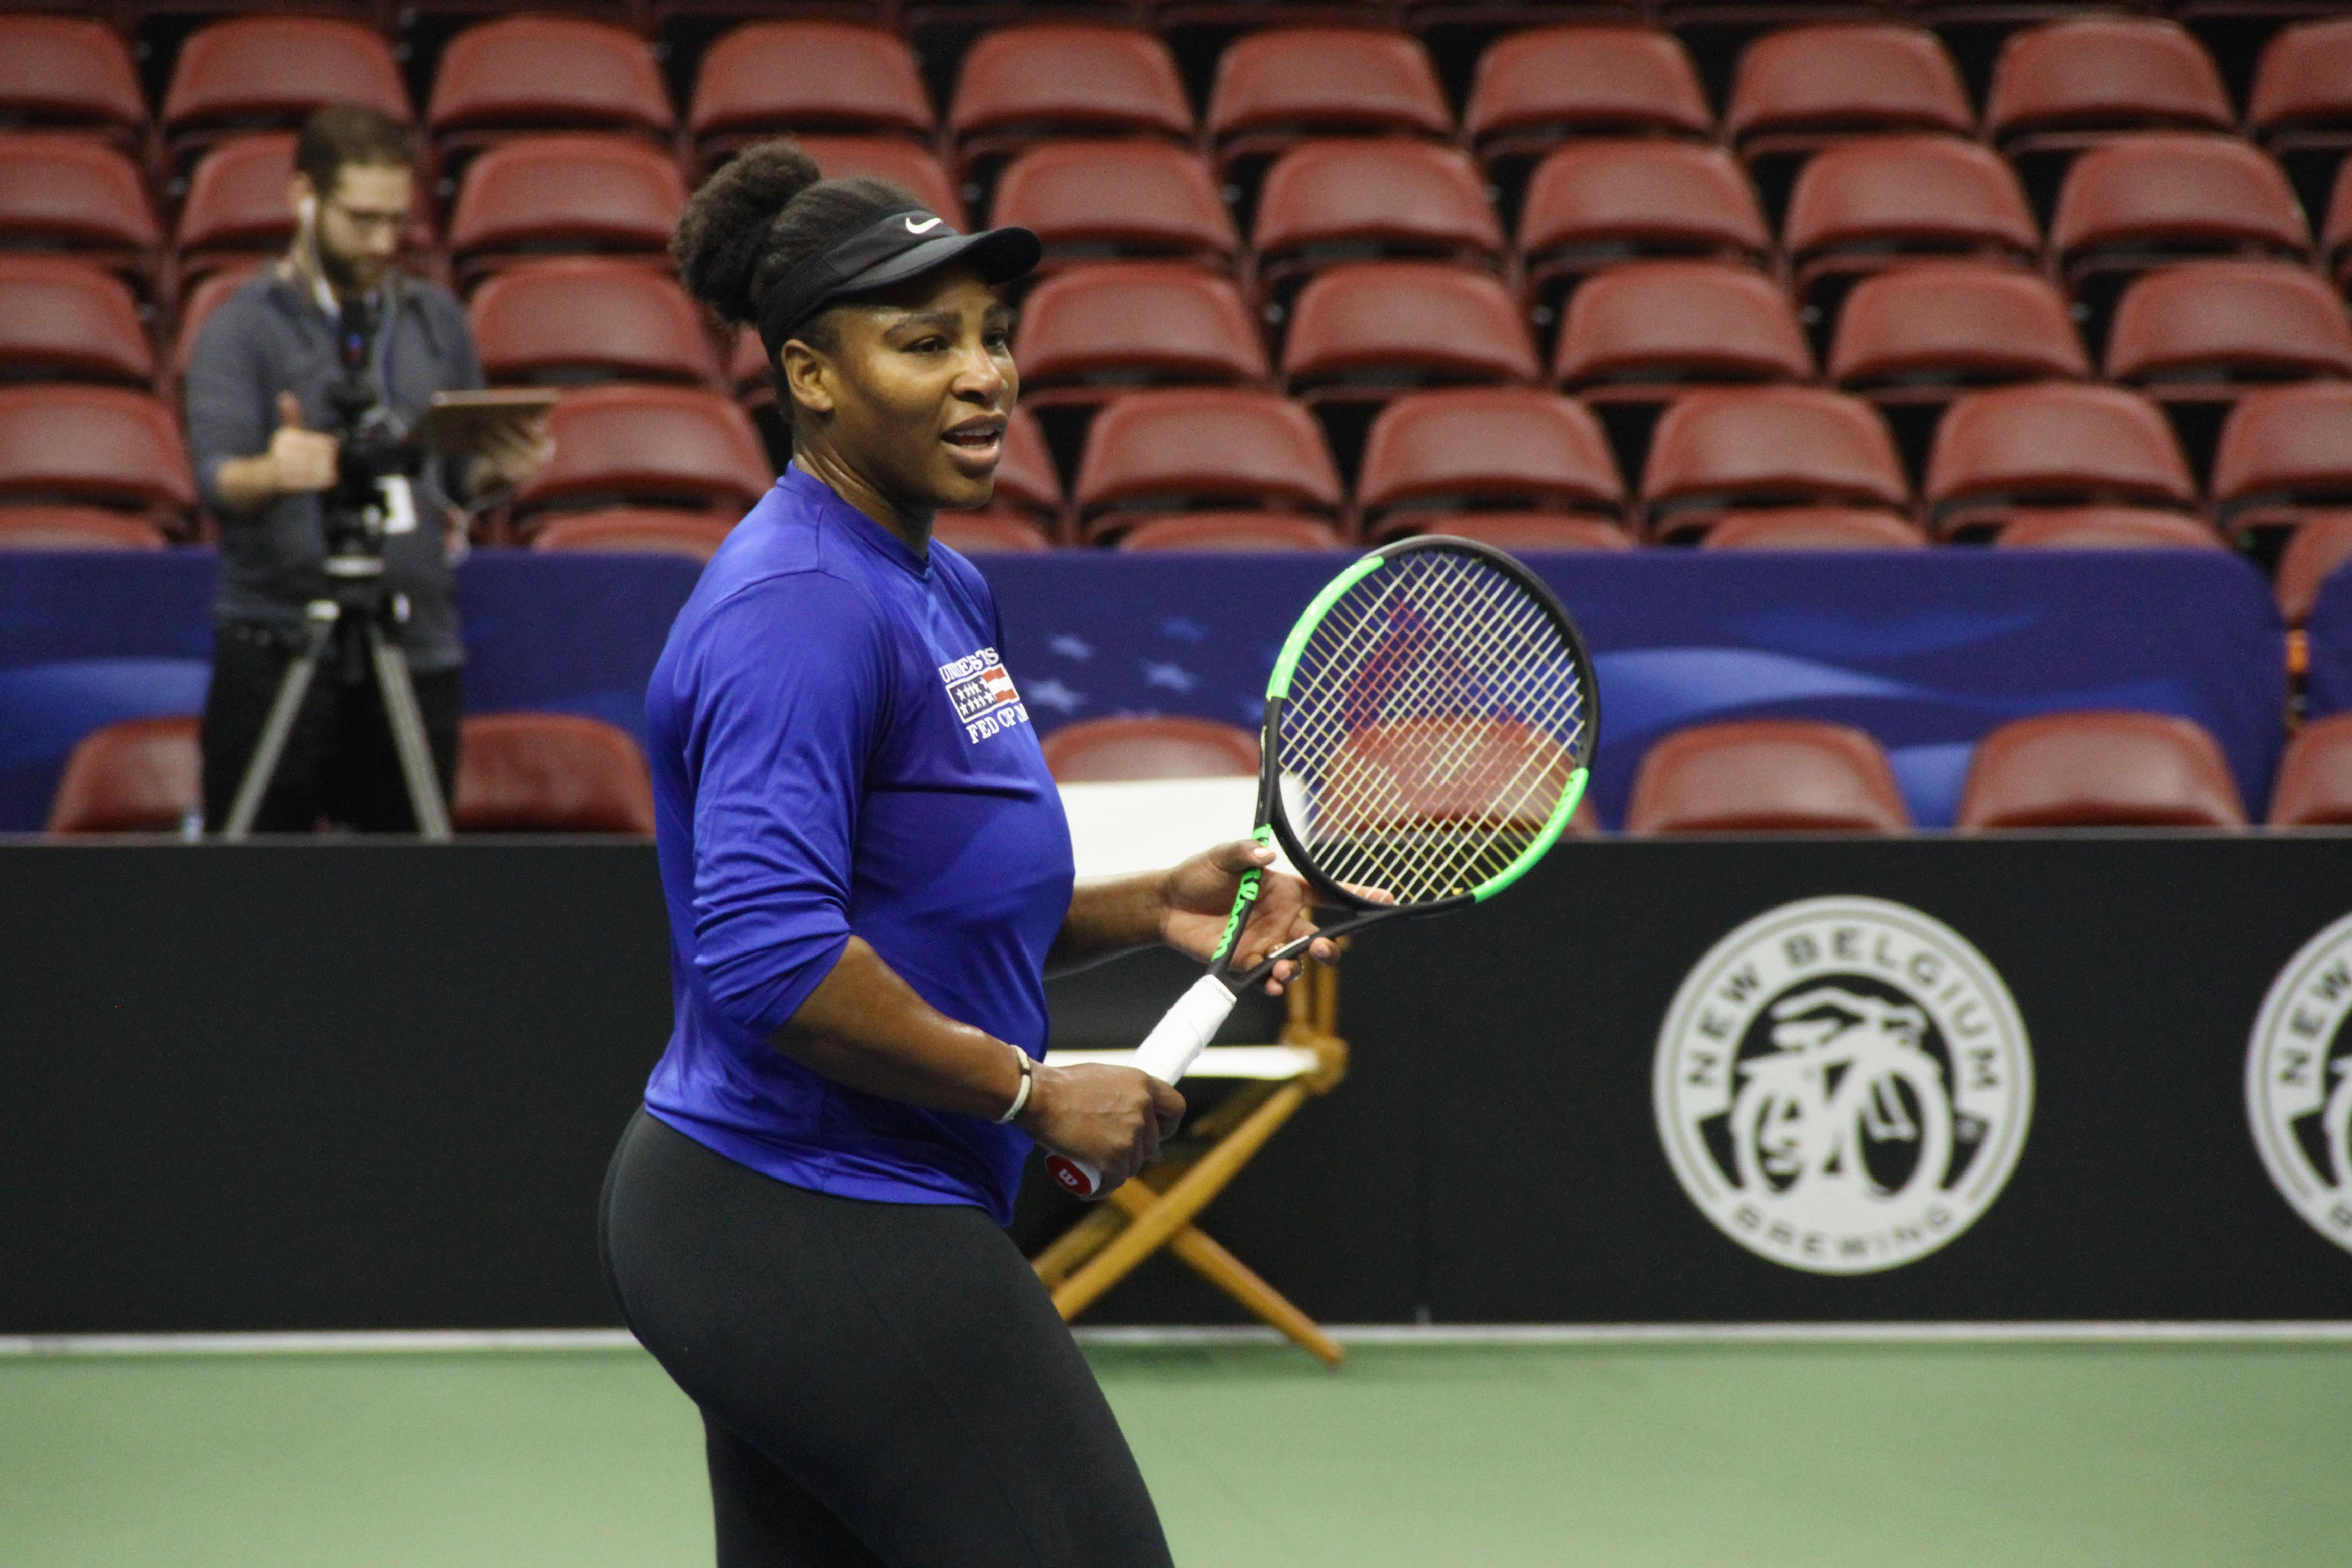 Serena Williams practices at the US Cellular Center on Feb. 7, 2018, ahead of the Fed Cup. (Photo credit: WLOS Staff)<p></p>